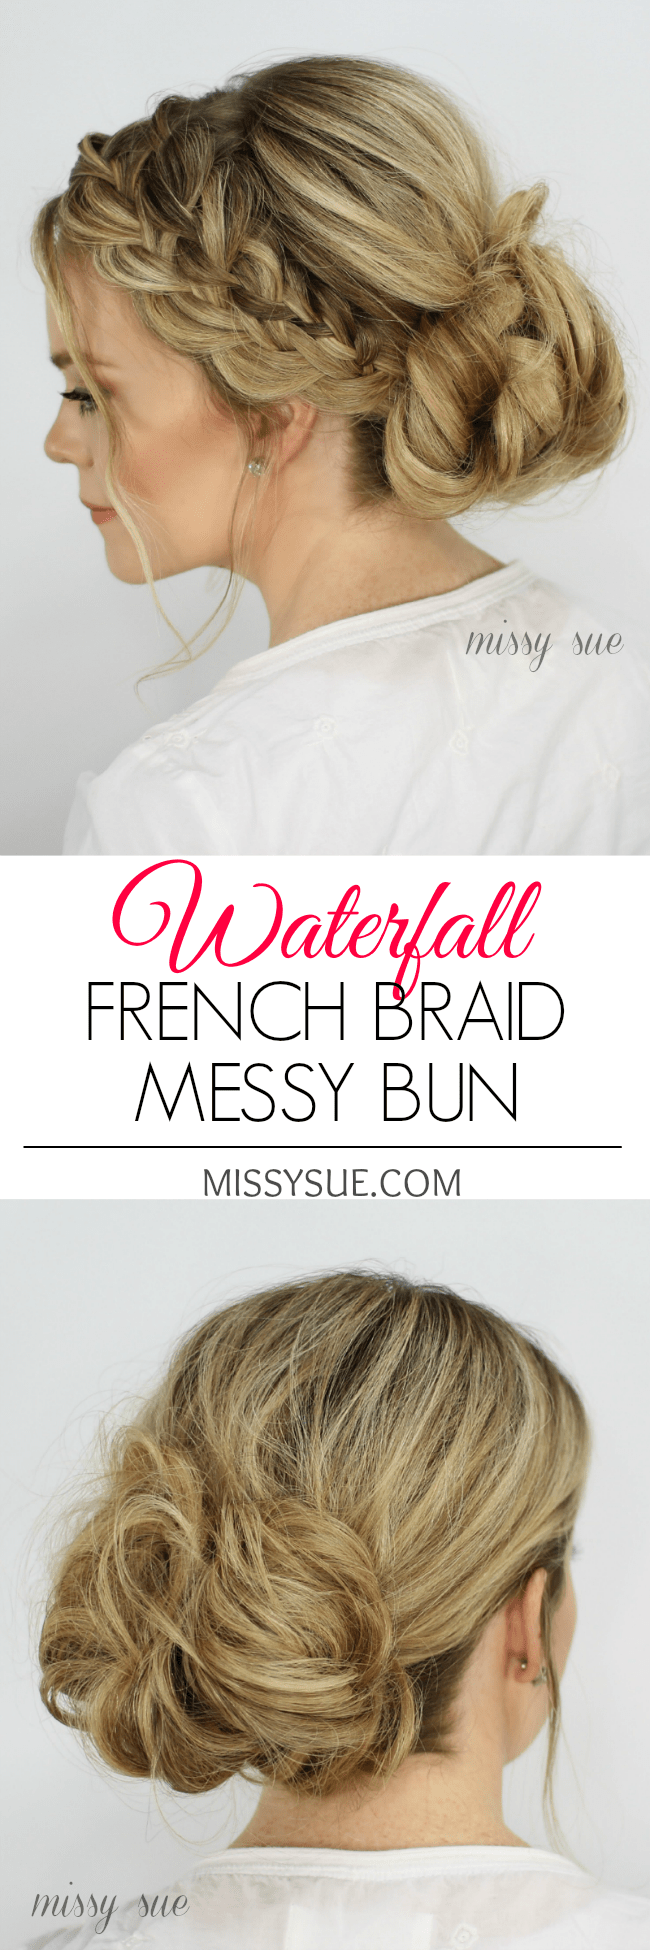 Waterfall French Braid and Low Messy Bun